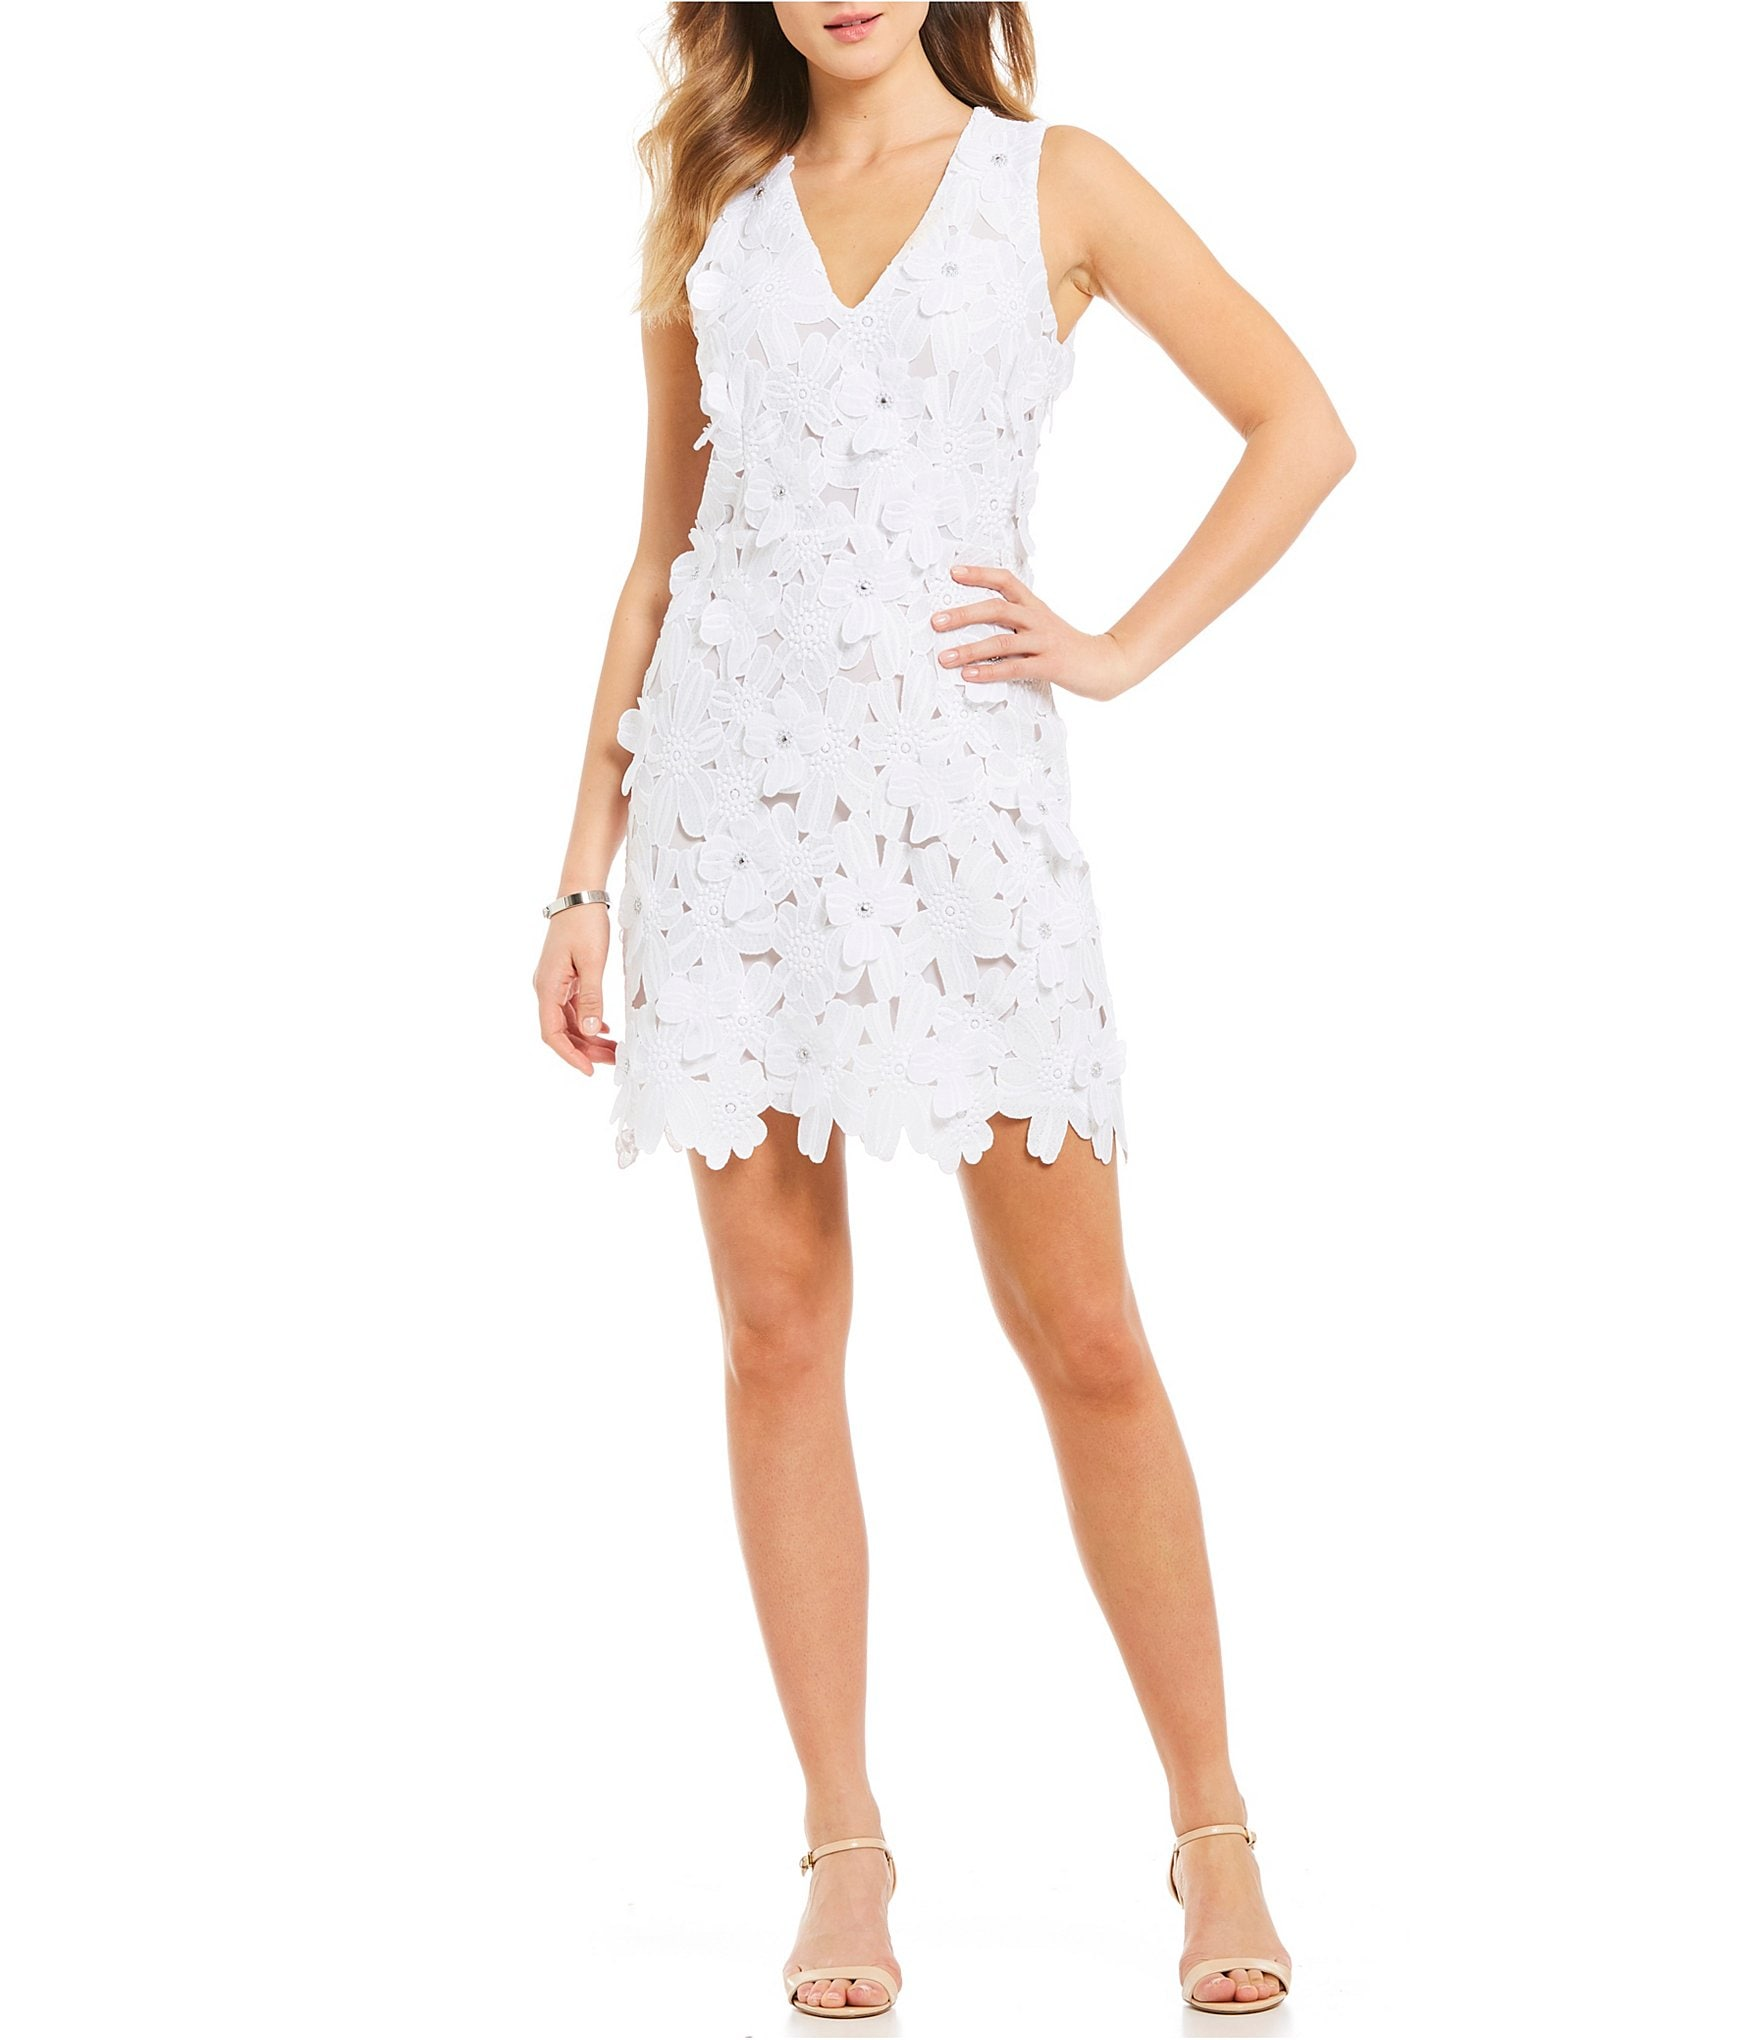 MICHAEL Michael Kors Women\'s Sleeveless Cocktail Dresses | Dillards